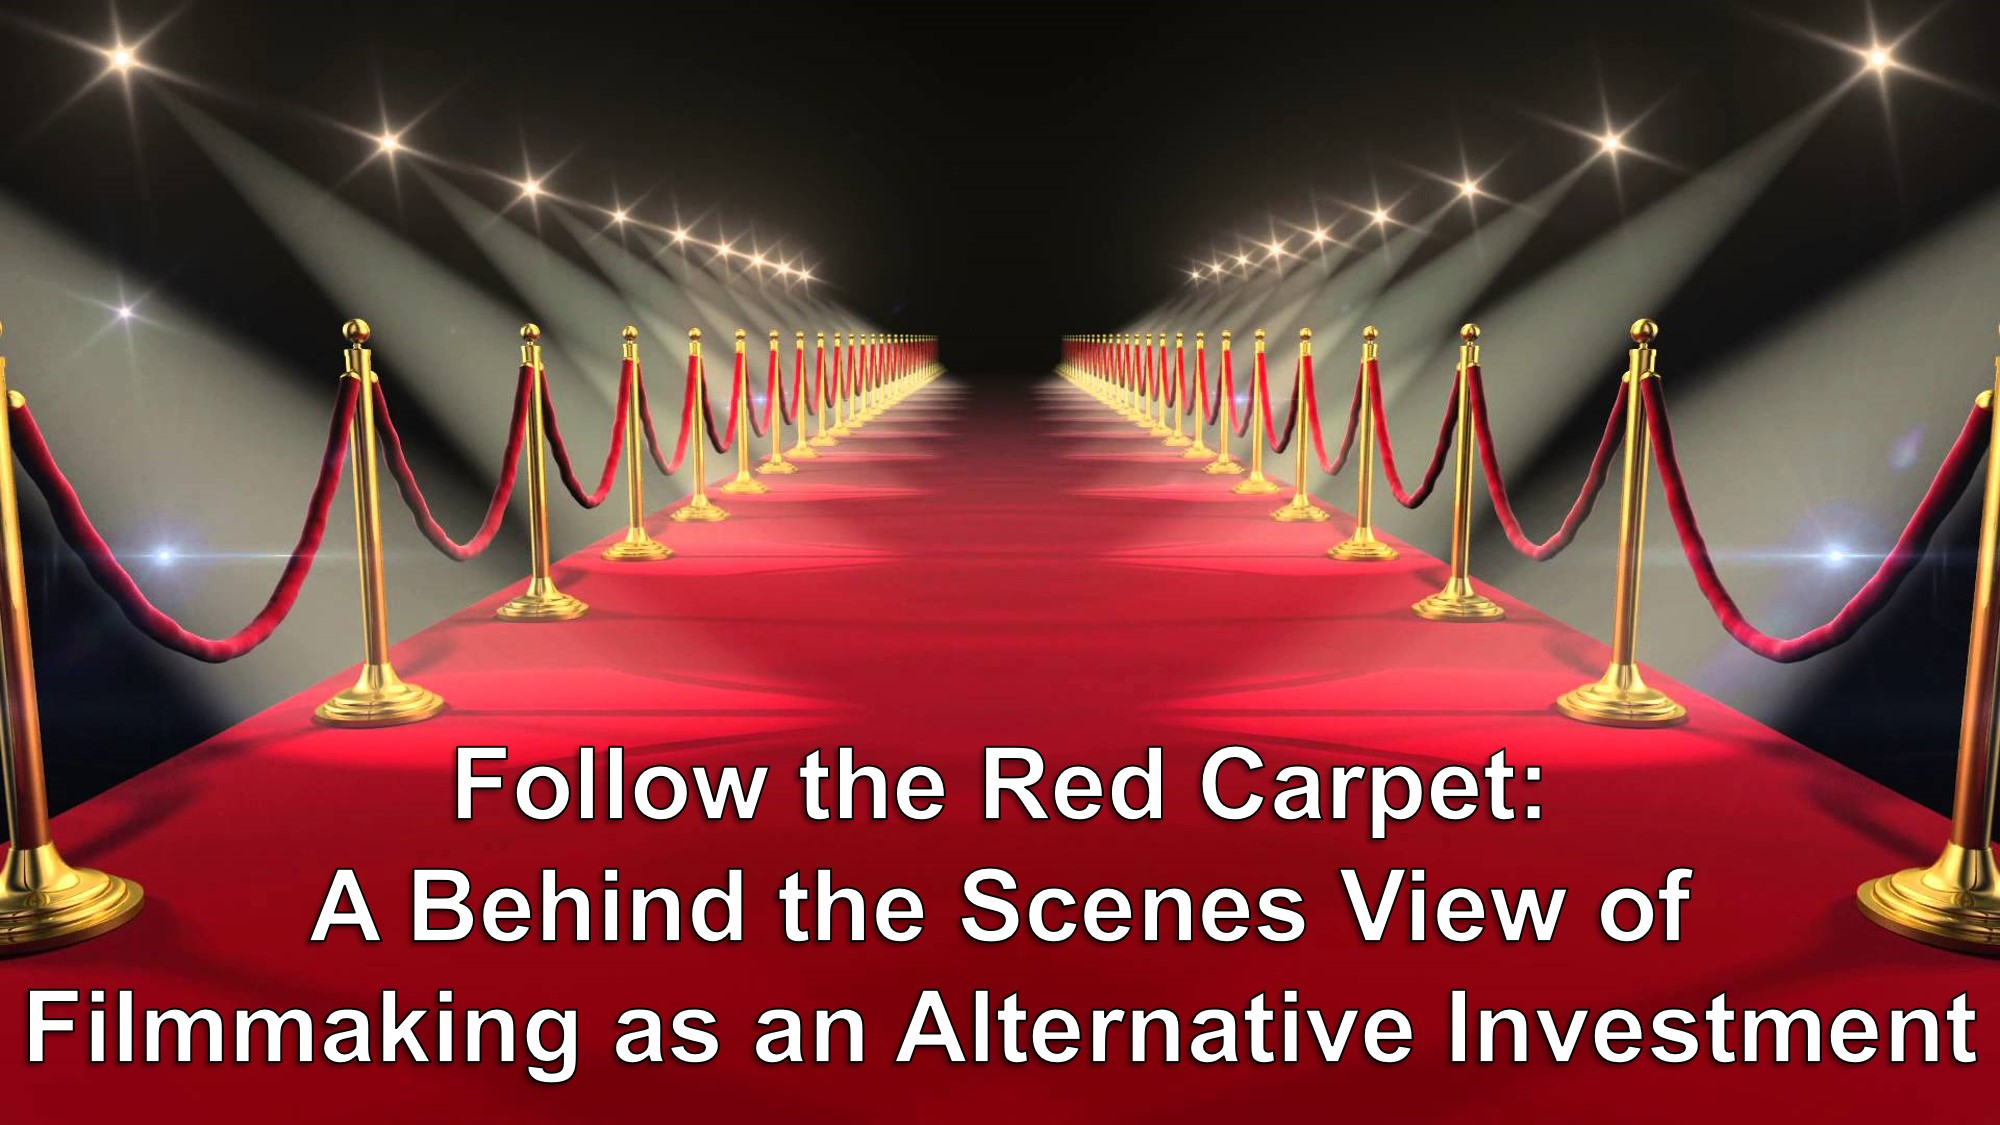 Follow the Red Carpet